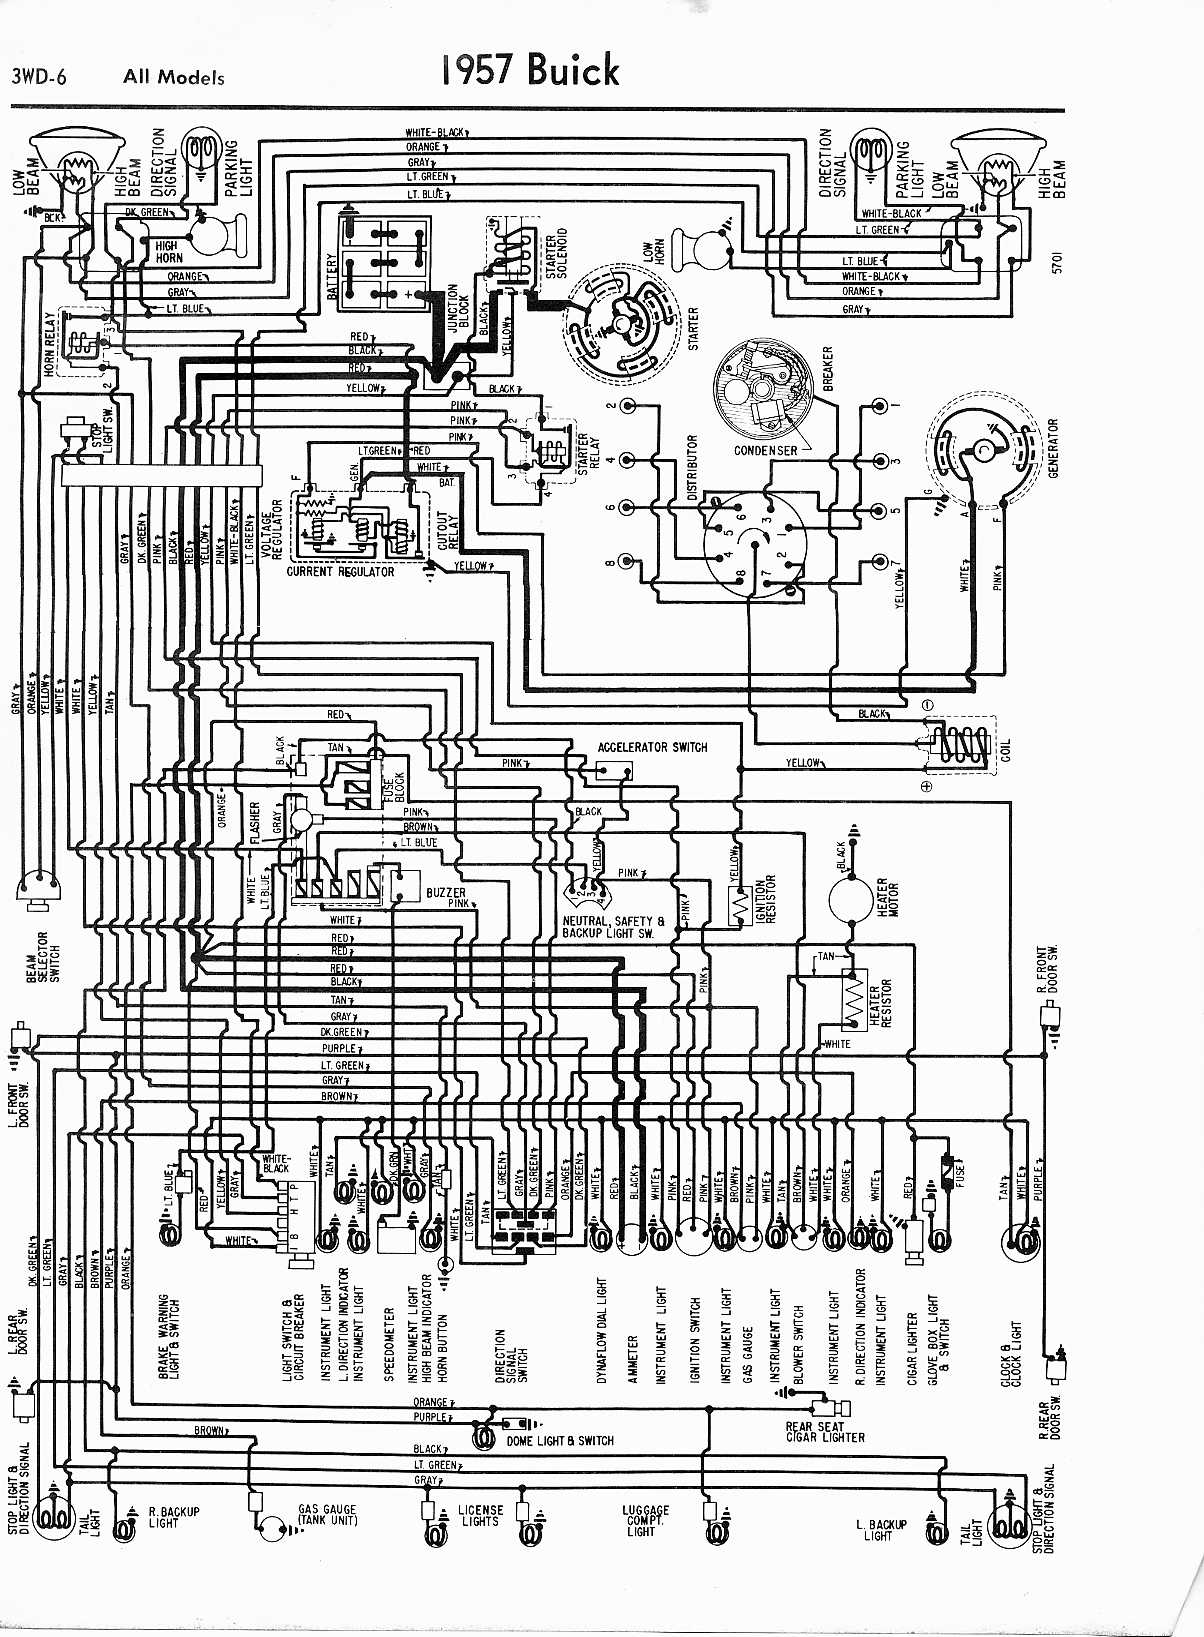 1966 buick riviera wiring diagram simple wiring diagram g body wiring  diagram 1964 riviera wiring diagram